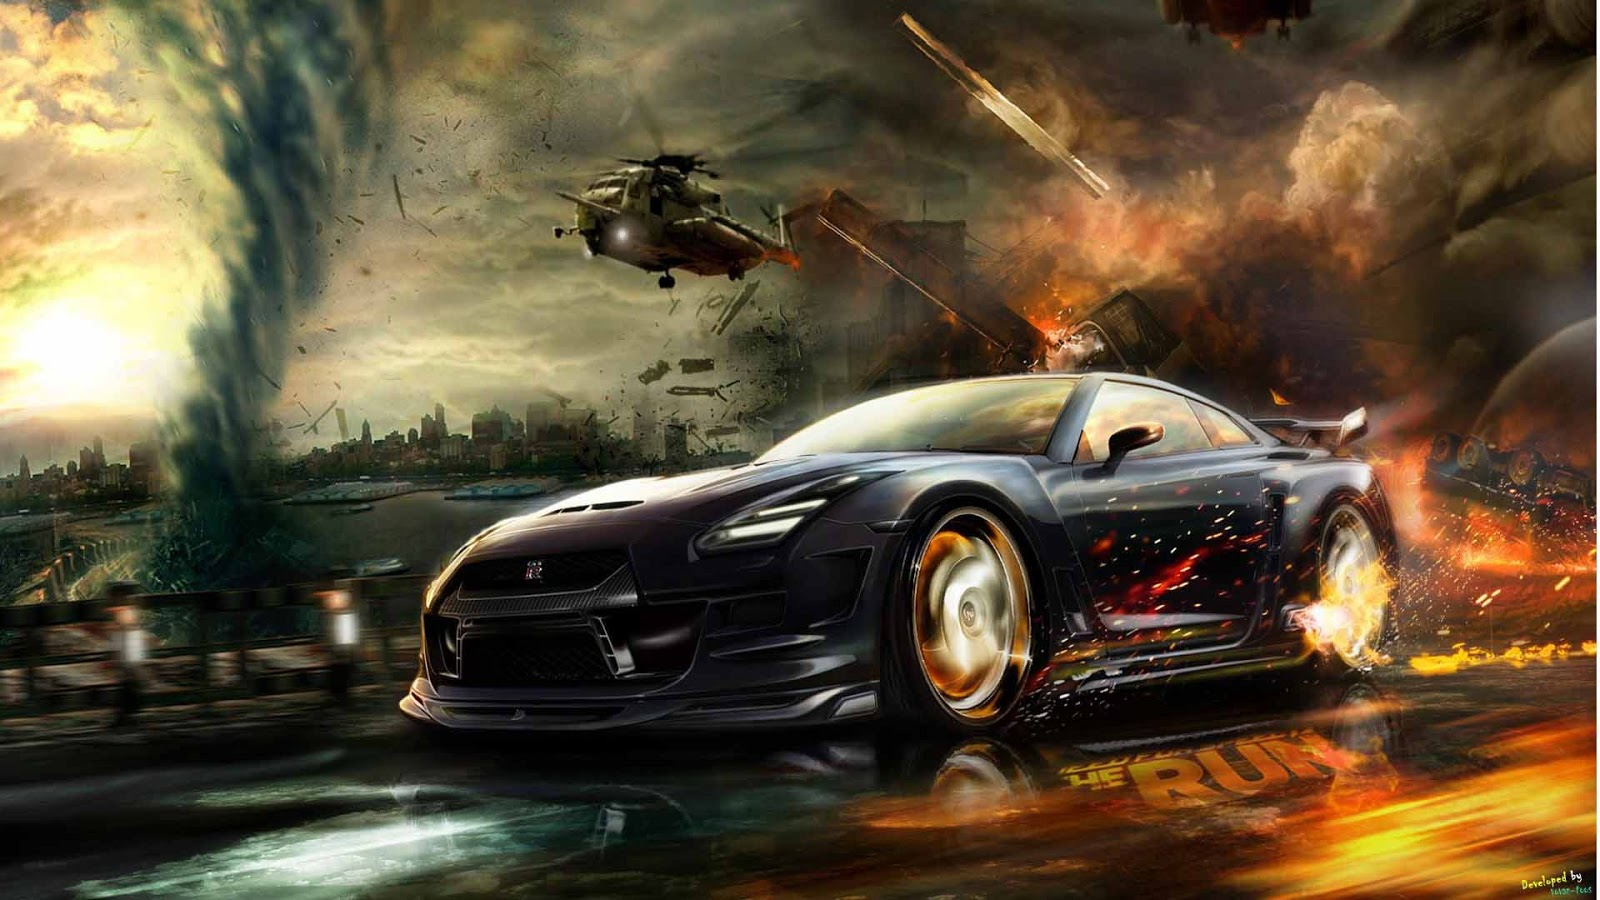 Need for speed hd wallpapers hd wallpapers pics - Speed wallpaper ...